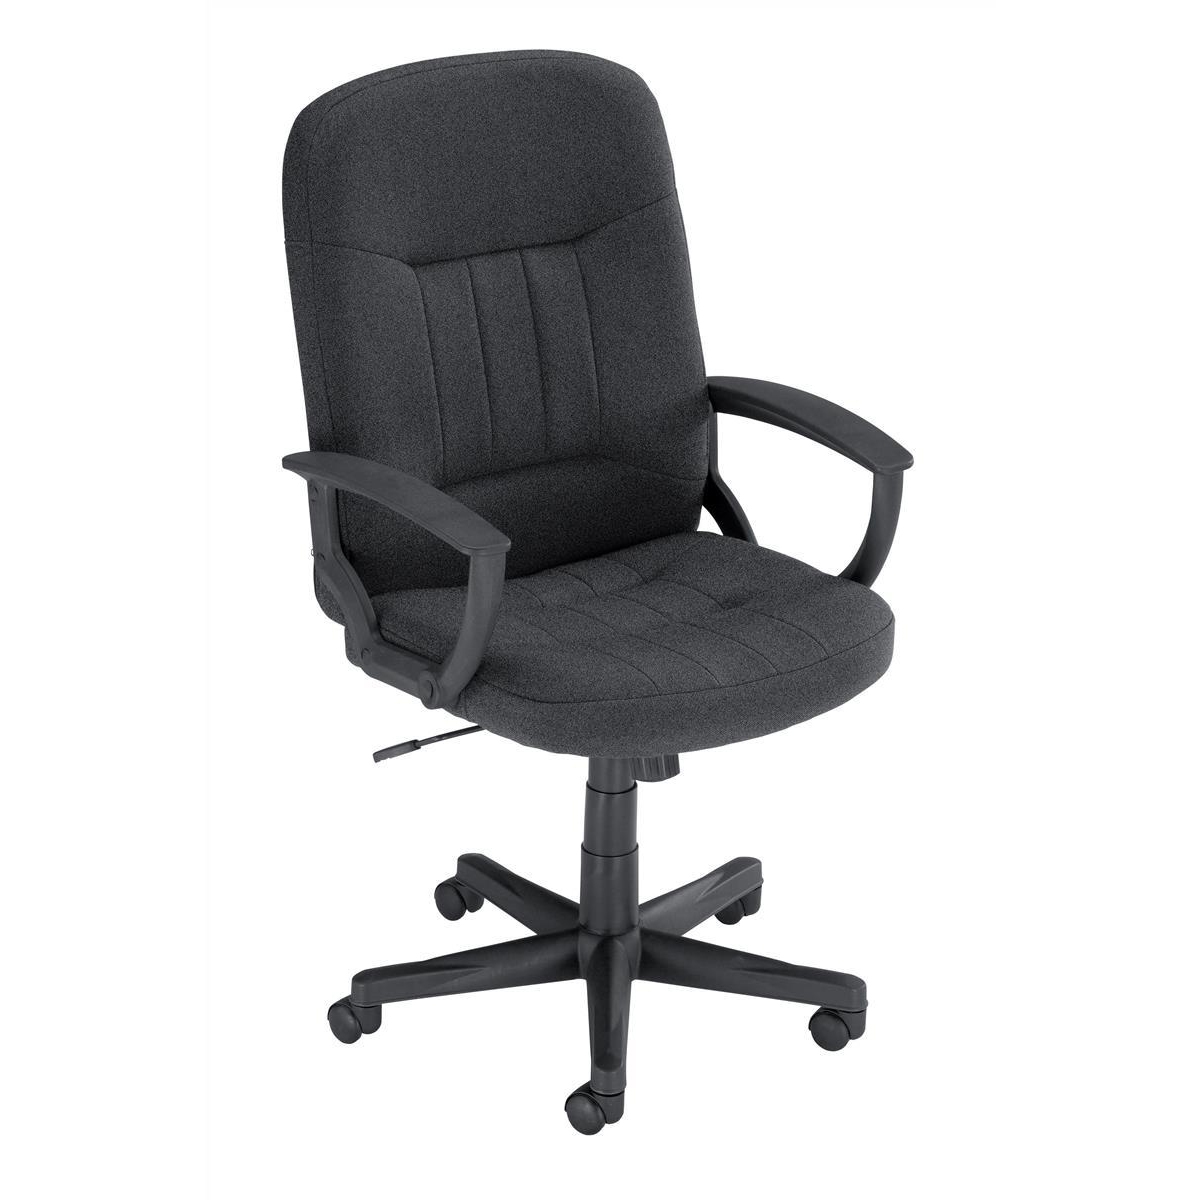 Trexus County Manager Chair Charcoal 520x420x420-520mm Ref